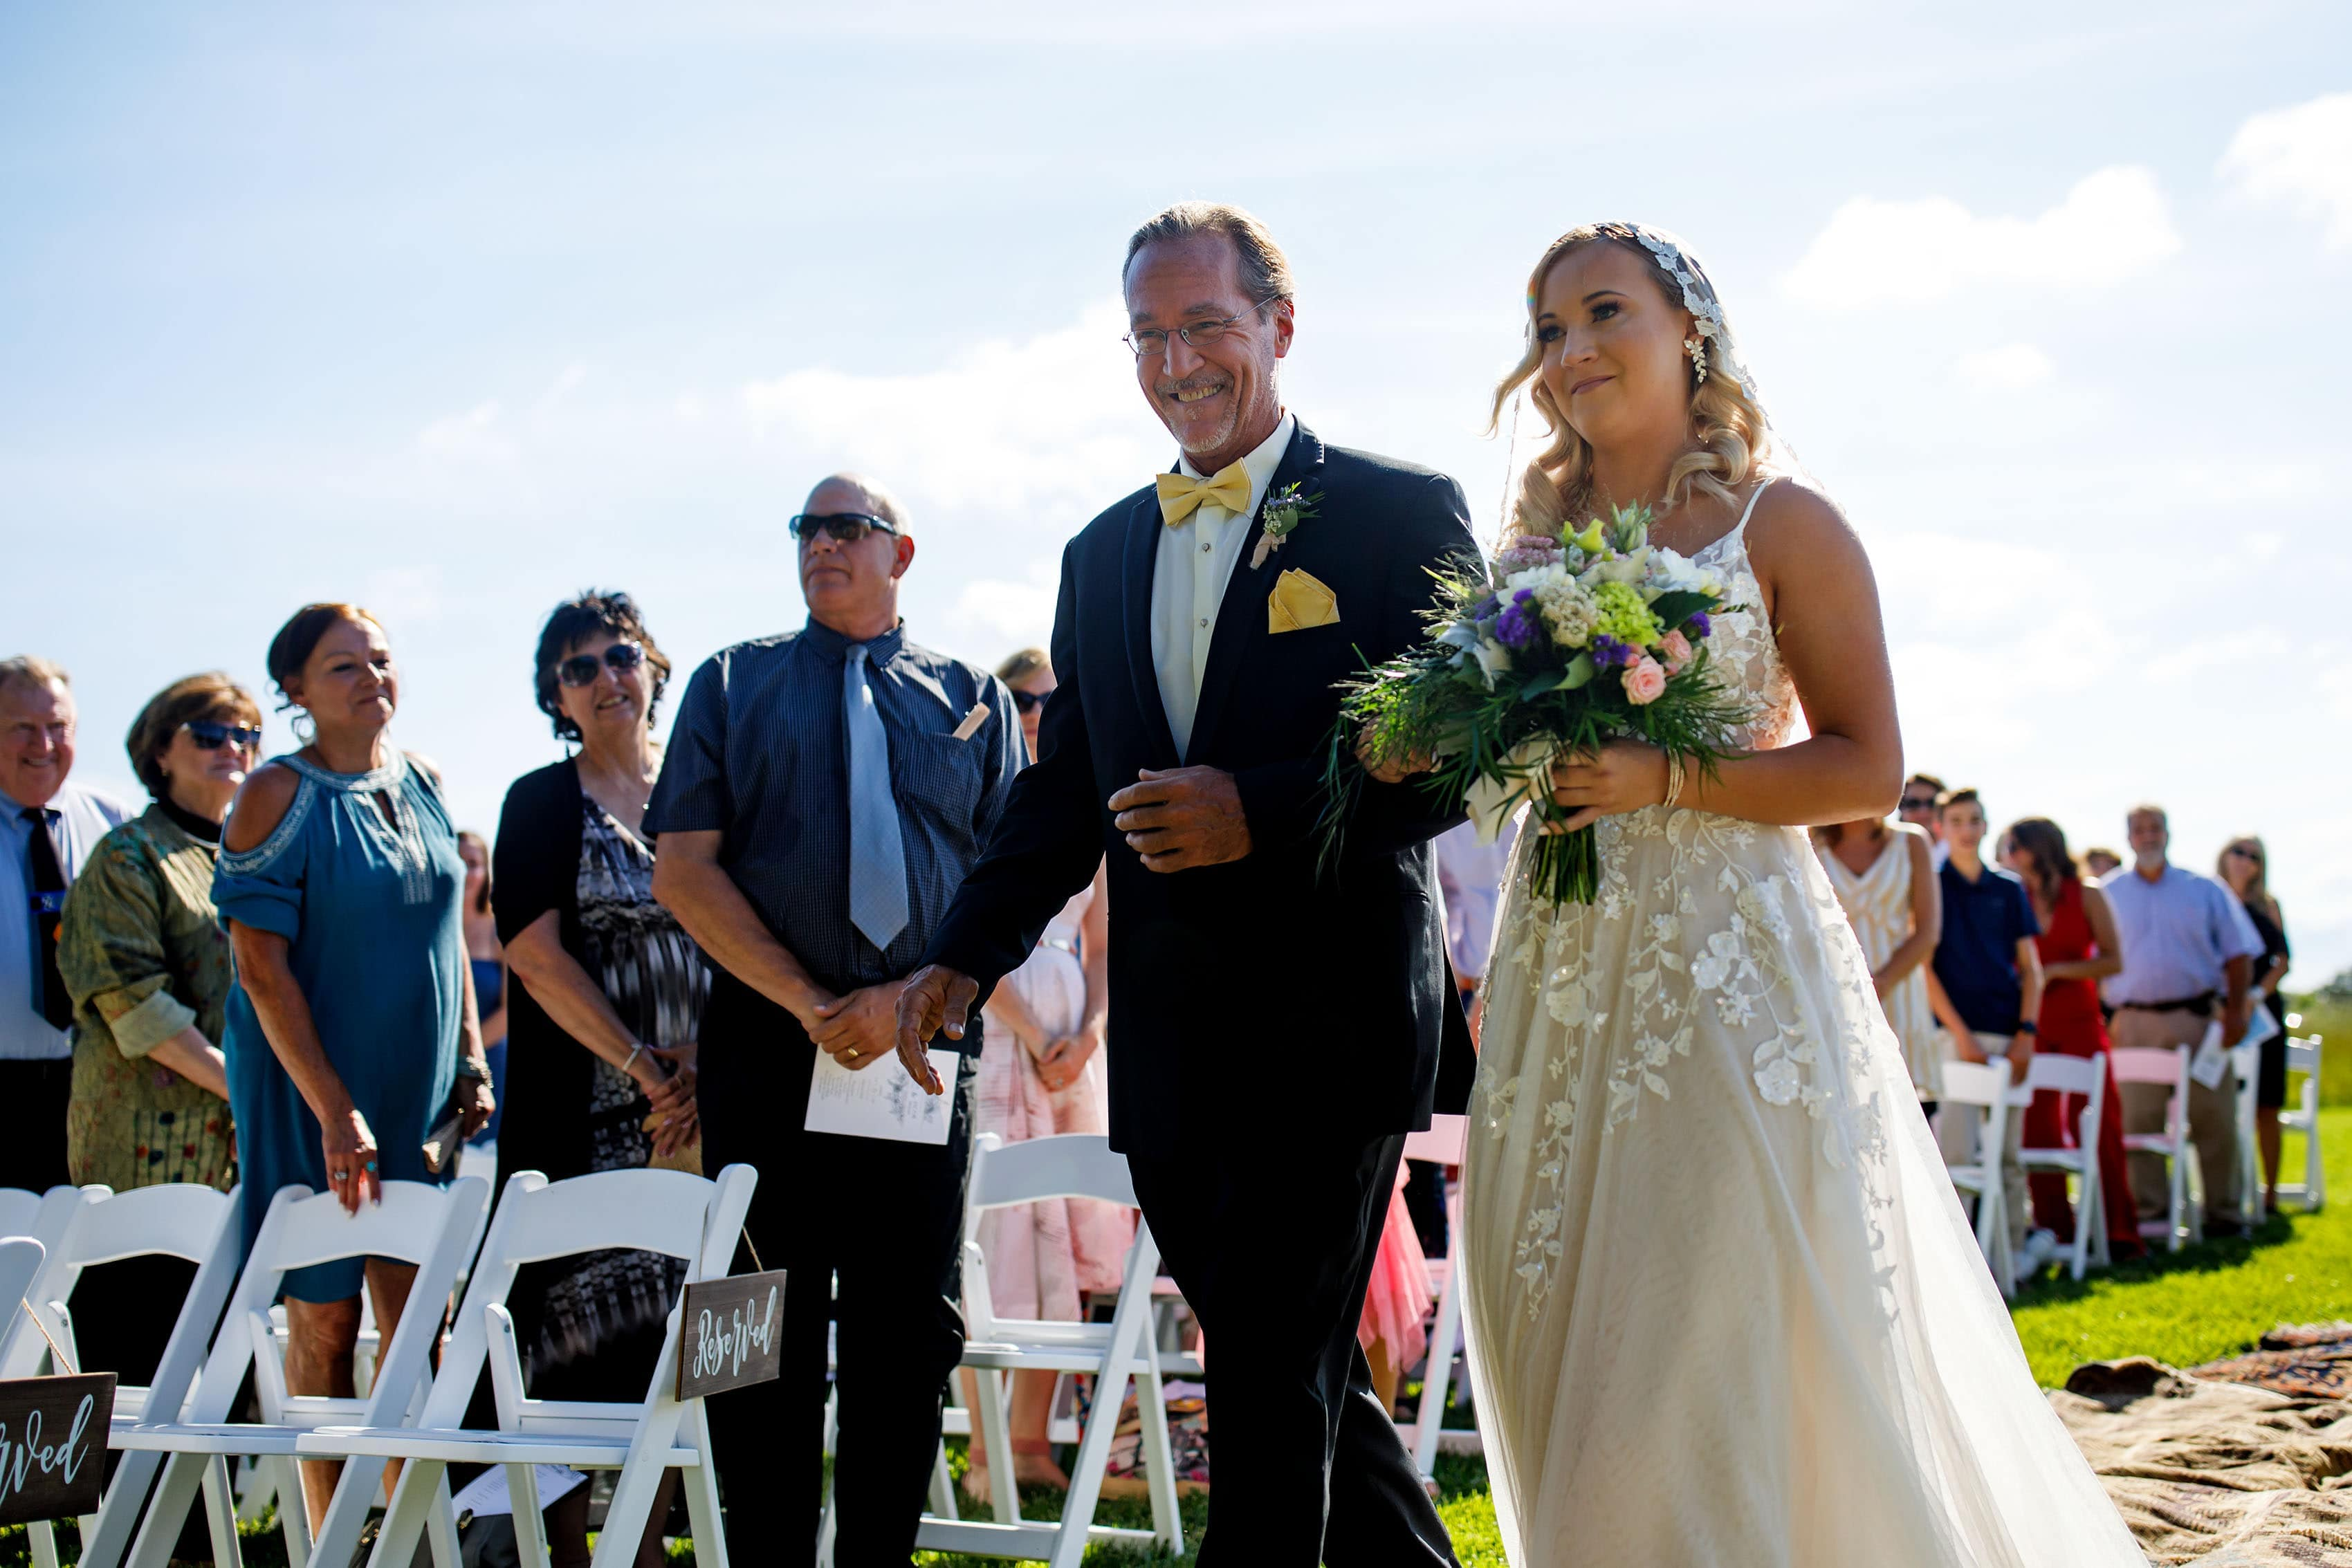 Sienna walks down the aisle with her father